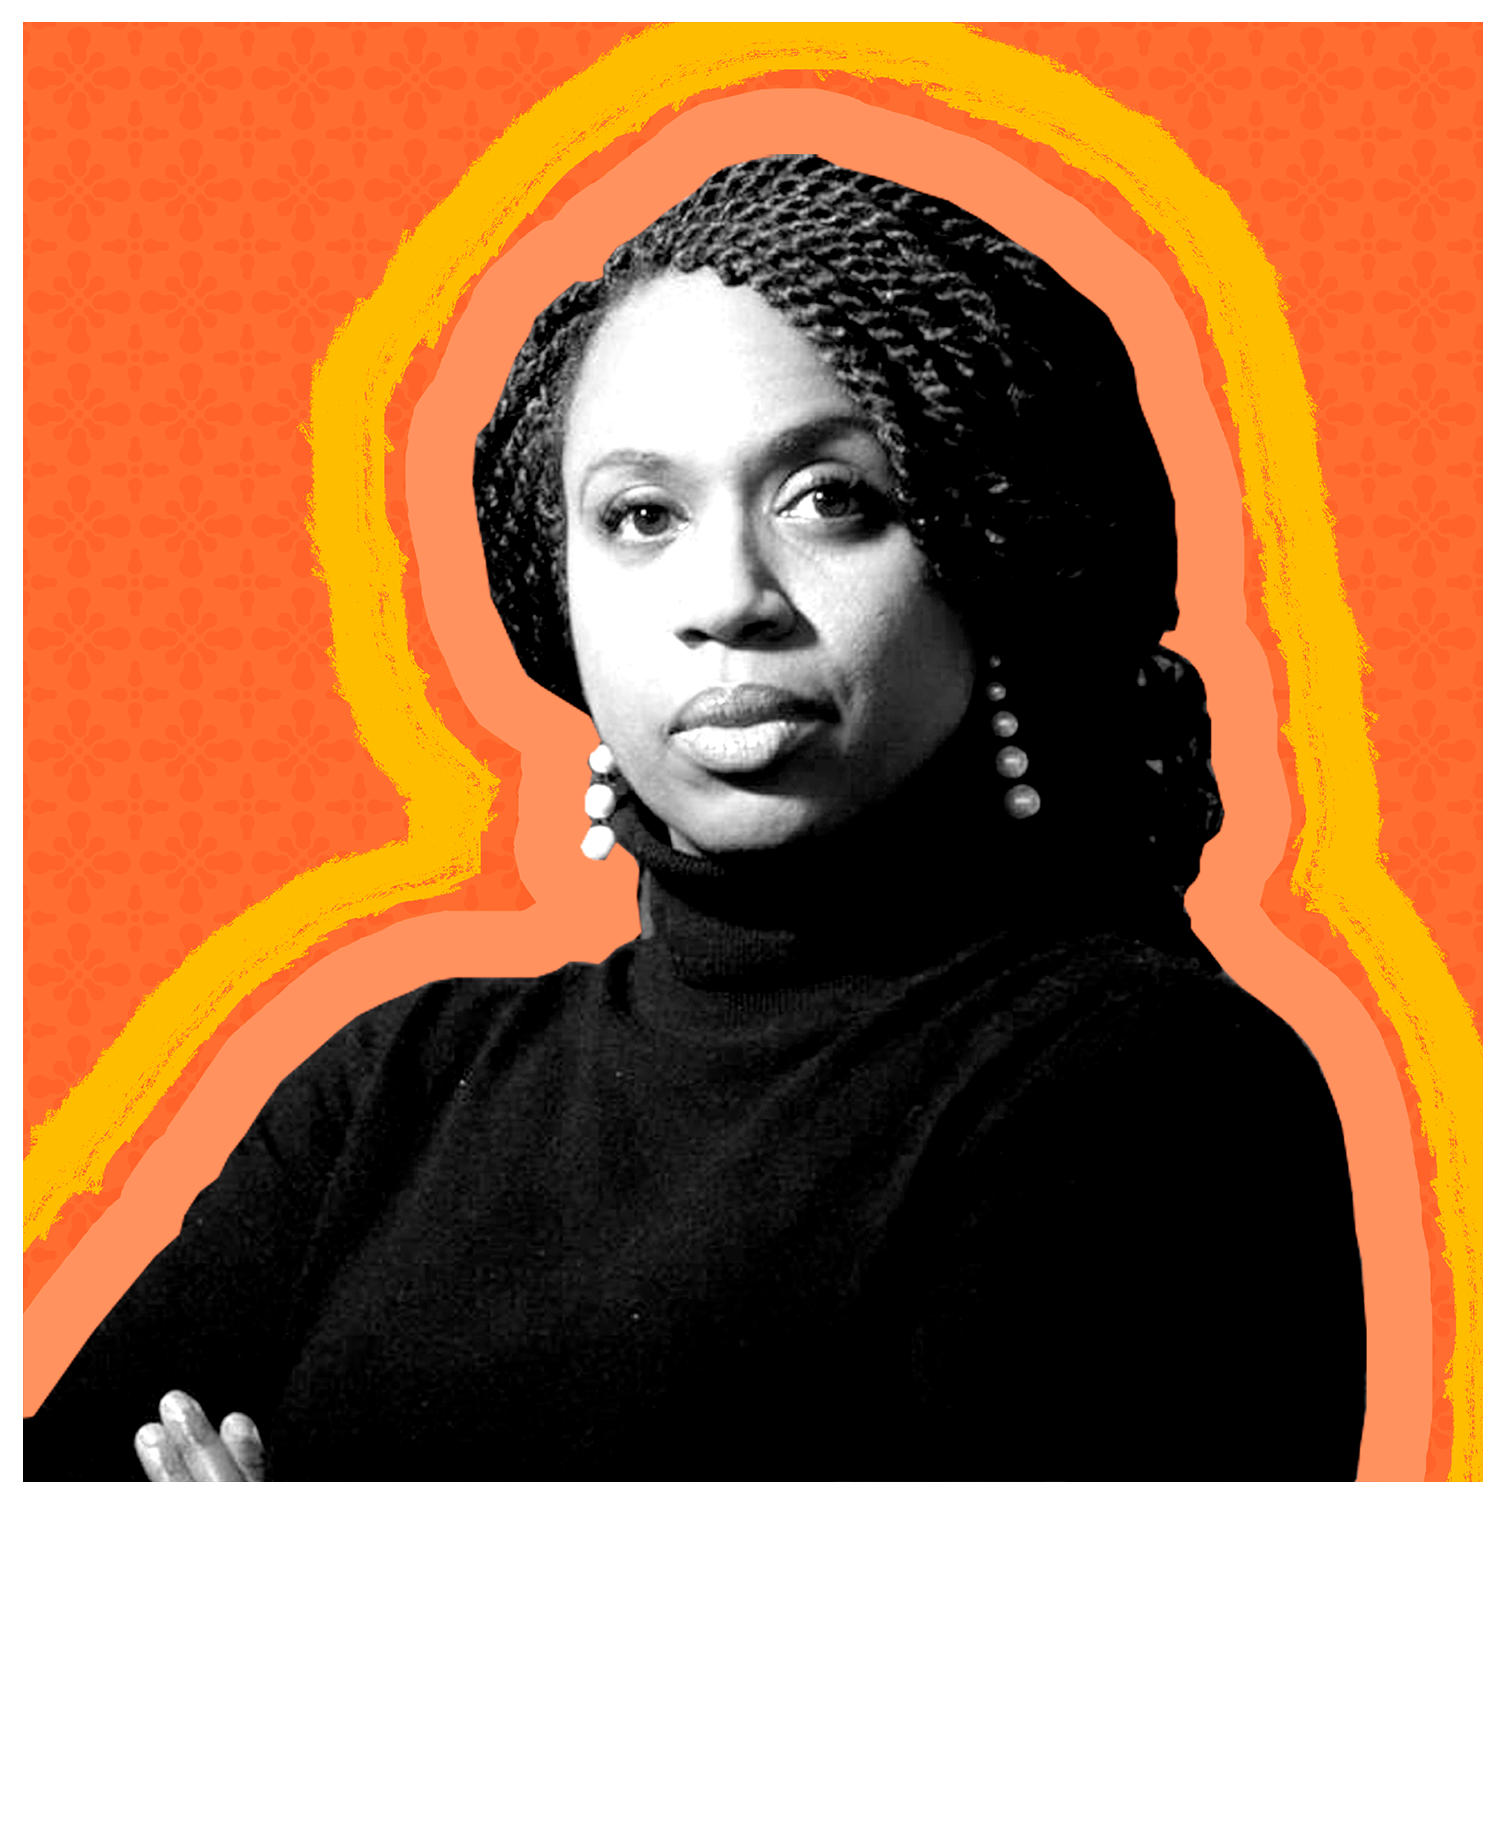 08262019---UWDA-Endorsement-Graphic-AyannaPressley-Slide-v2